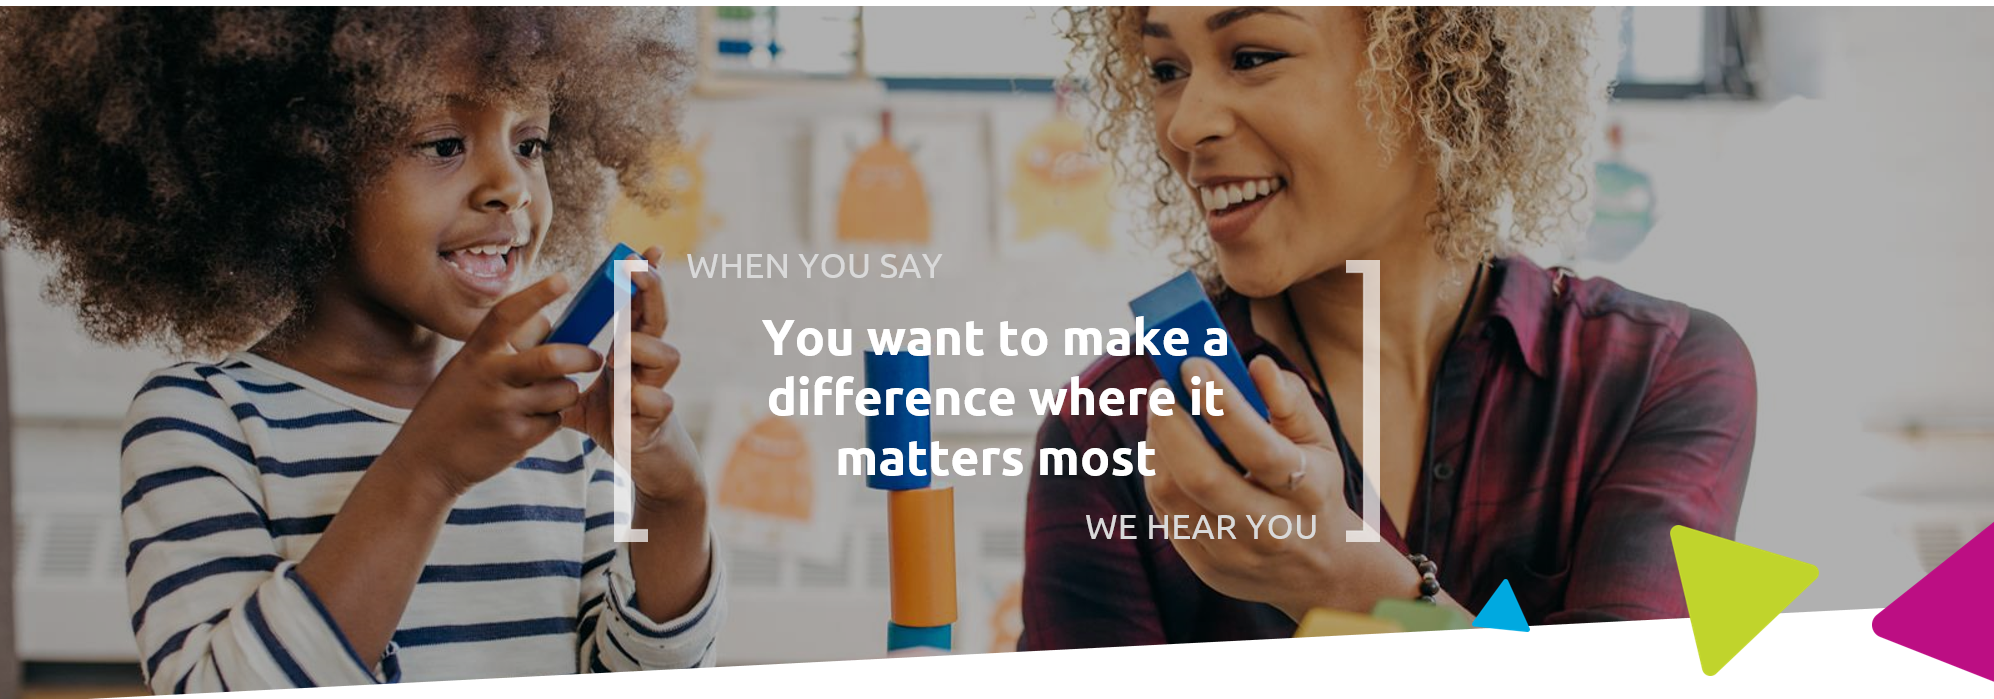 When you say you want to make a difference where it matters most, we hear you